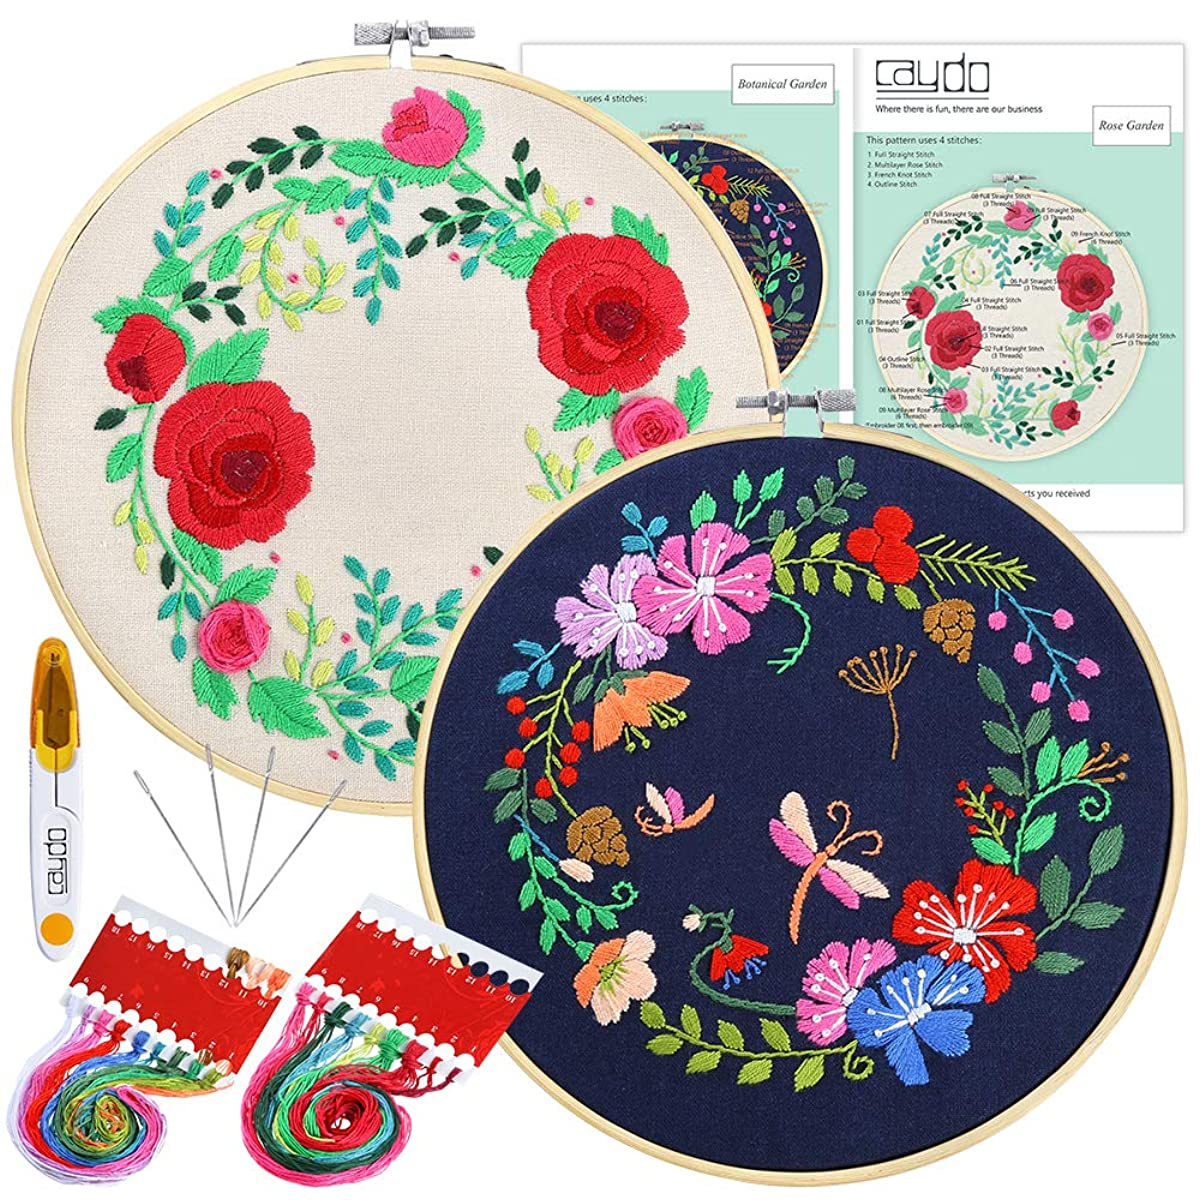 Caydo 2 Sets Full Range of Embroidery Starter Kit with Pattern and Instructions, Cross Stitch Kit Including 2 Embroidery Clothes with Floral Pattern, 2 Bamboo Embroidery Hoops, Color Threads and Tools